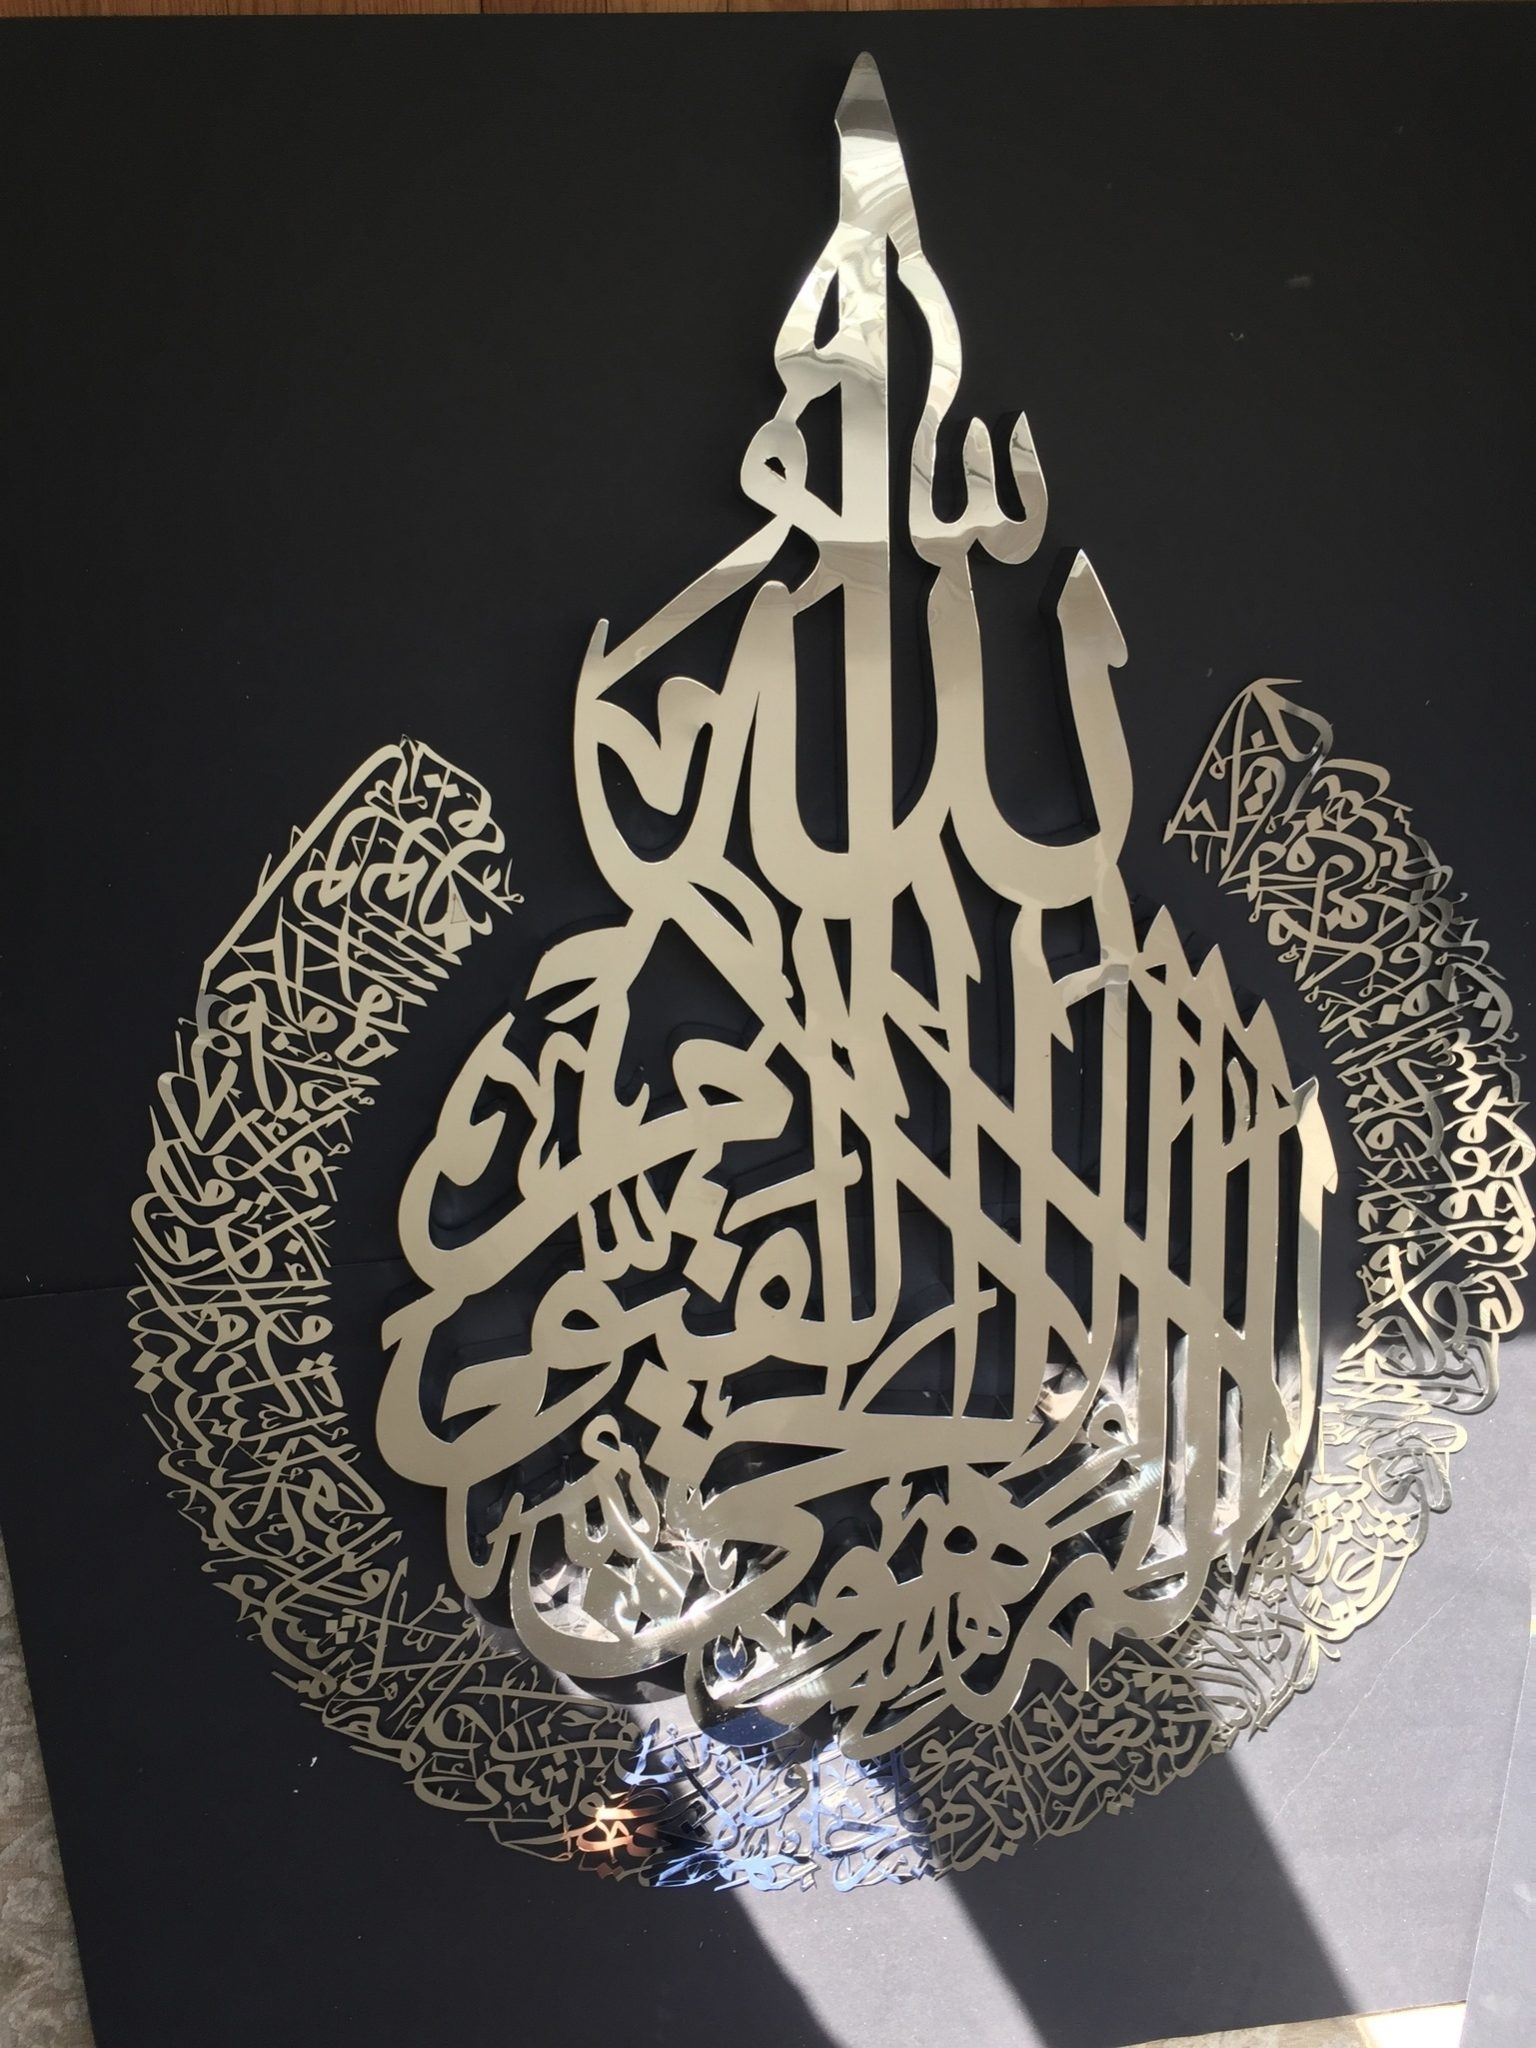 Ayatul Kursi  Stainless Steel Modern Islamic Wall Art Arabic With Regard To Most Popular Islamic Wall Art (View 3 of 15)